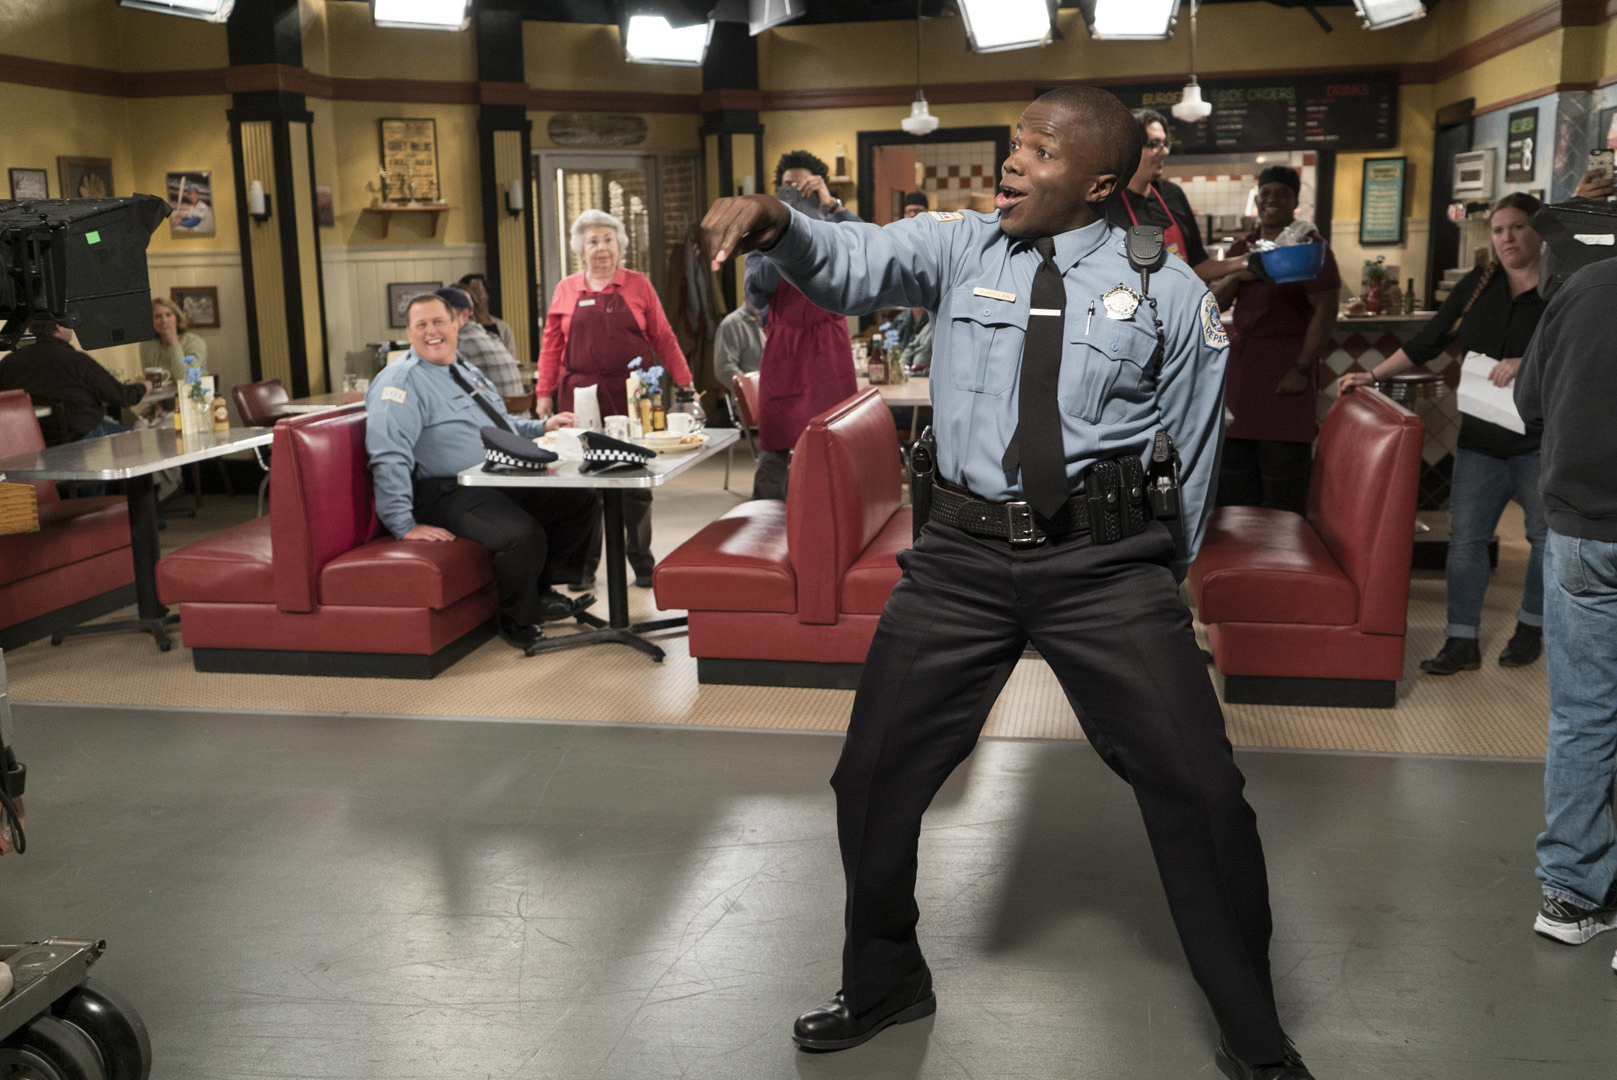 Mike & Molly's Reno Wilson busts a move for the live audience while taping the series' final season.